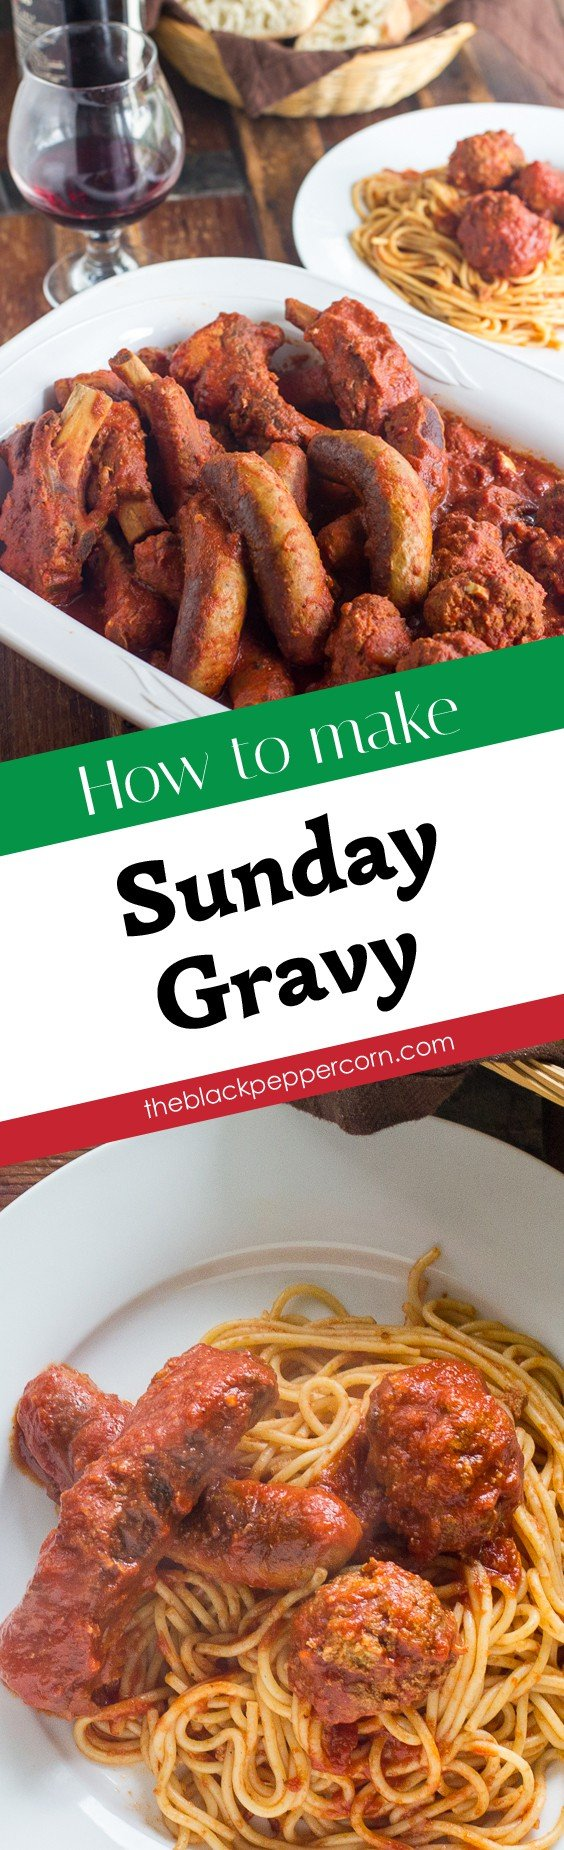 How to make Sunday Gravy Recipe